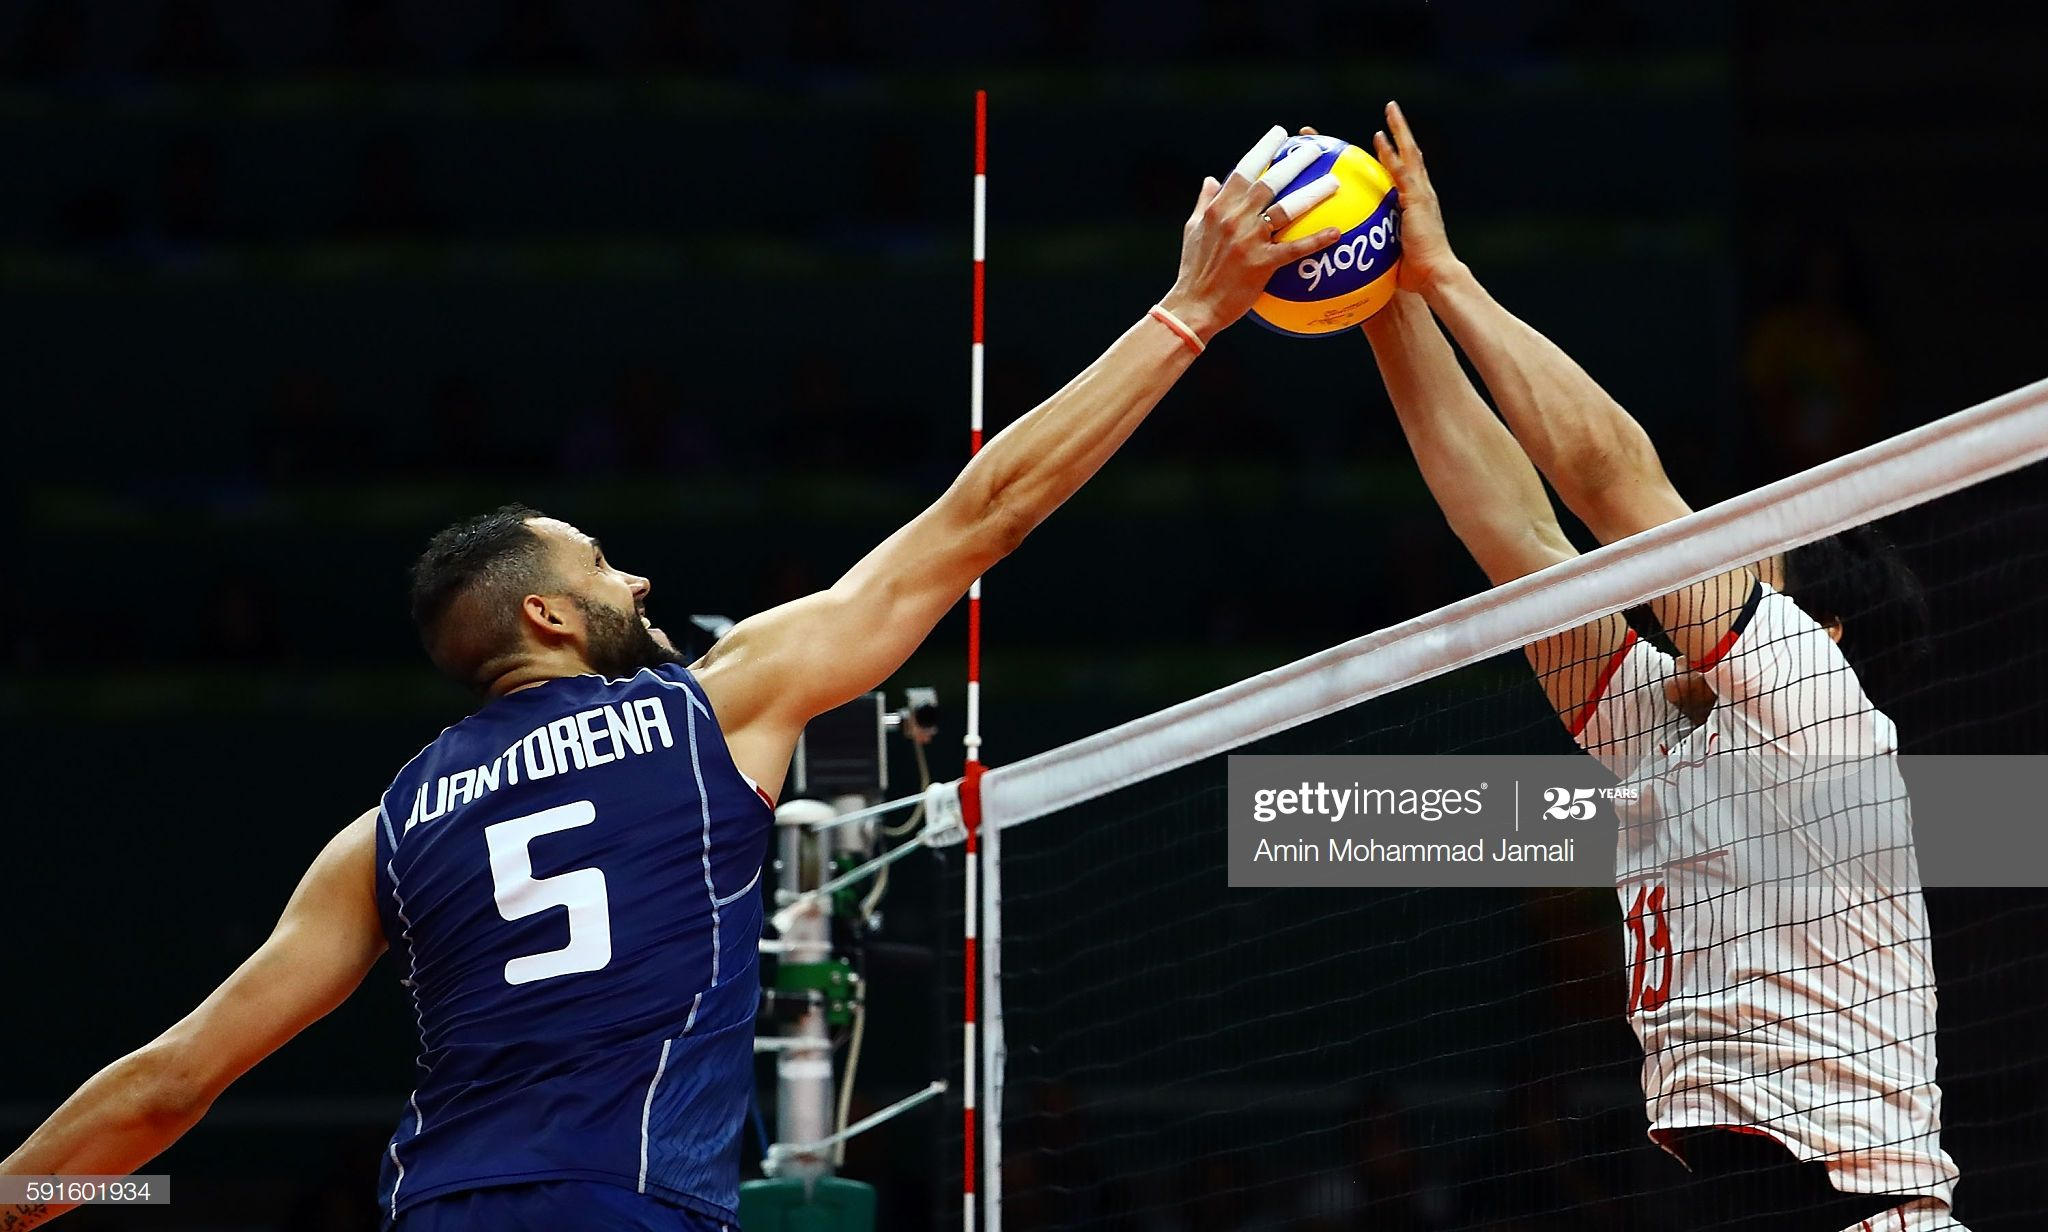 Osmany Juantorena Of Italy In Action Against Iran During The Men S In 2020 Rio Olympics 2016 Olympics 2016 Olympic Games